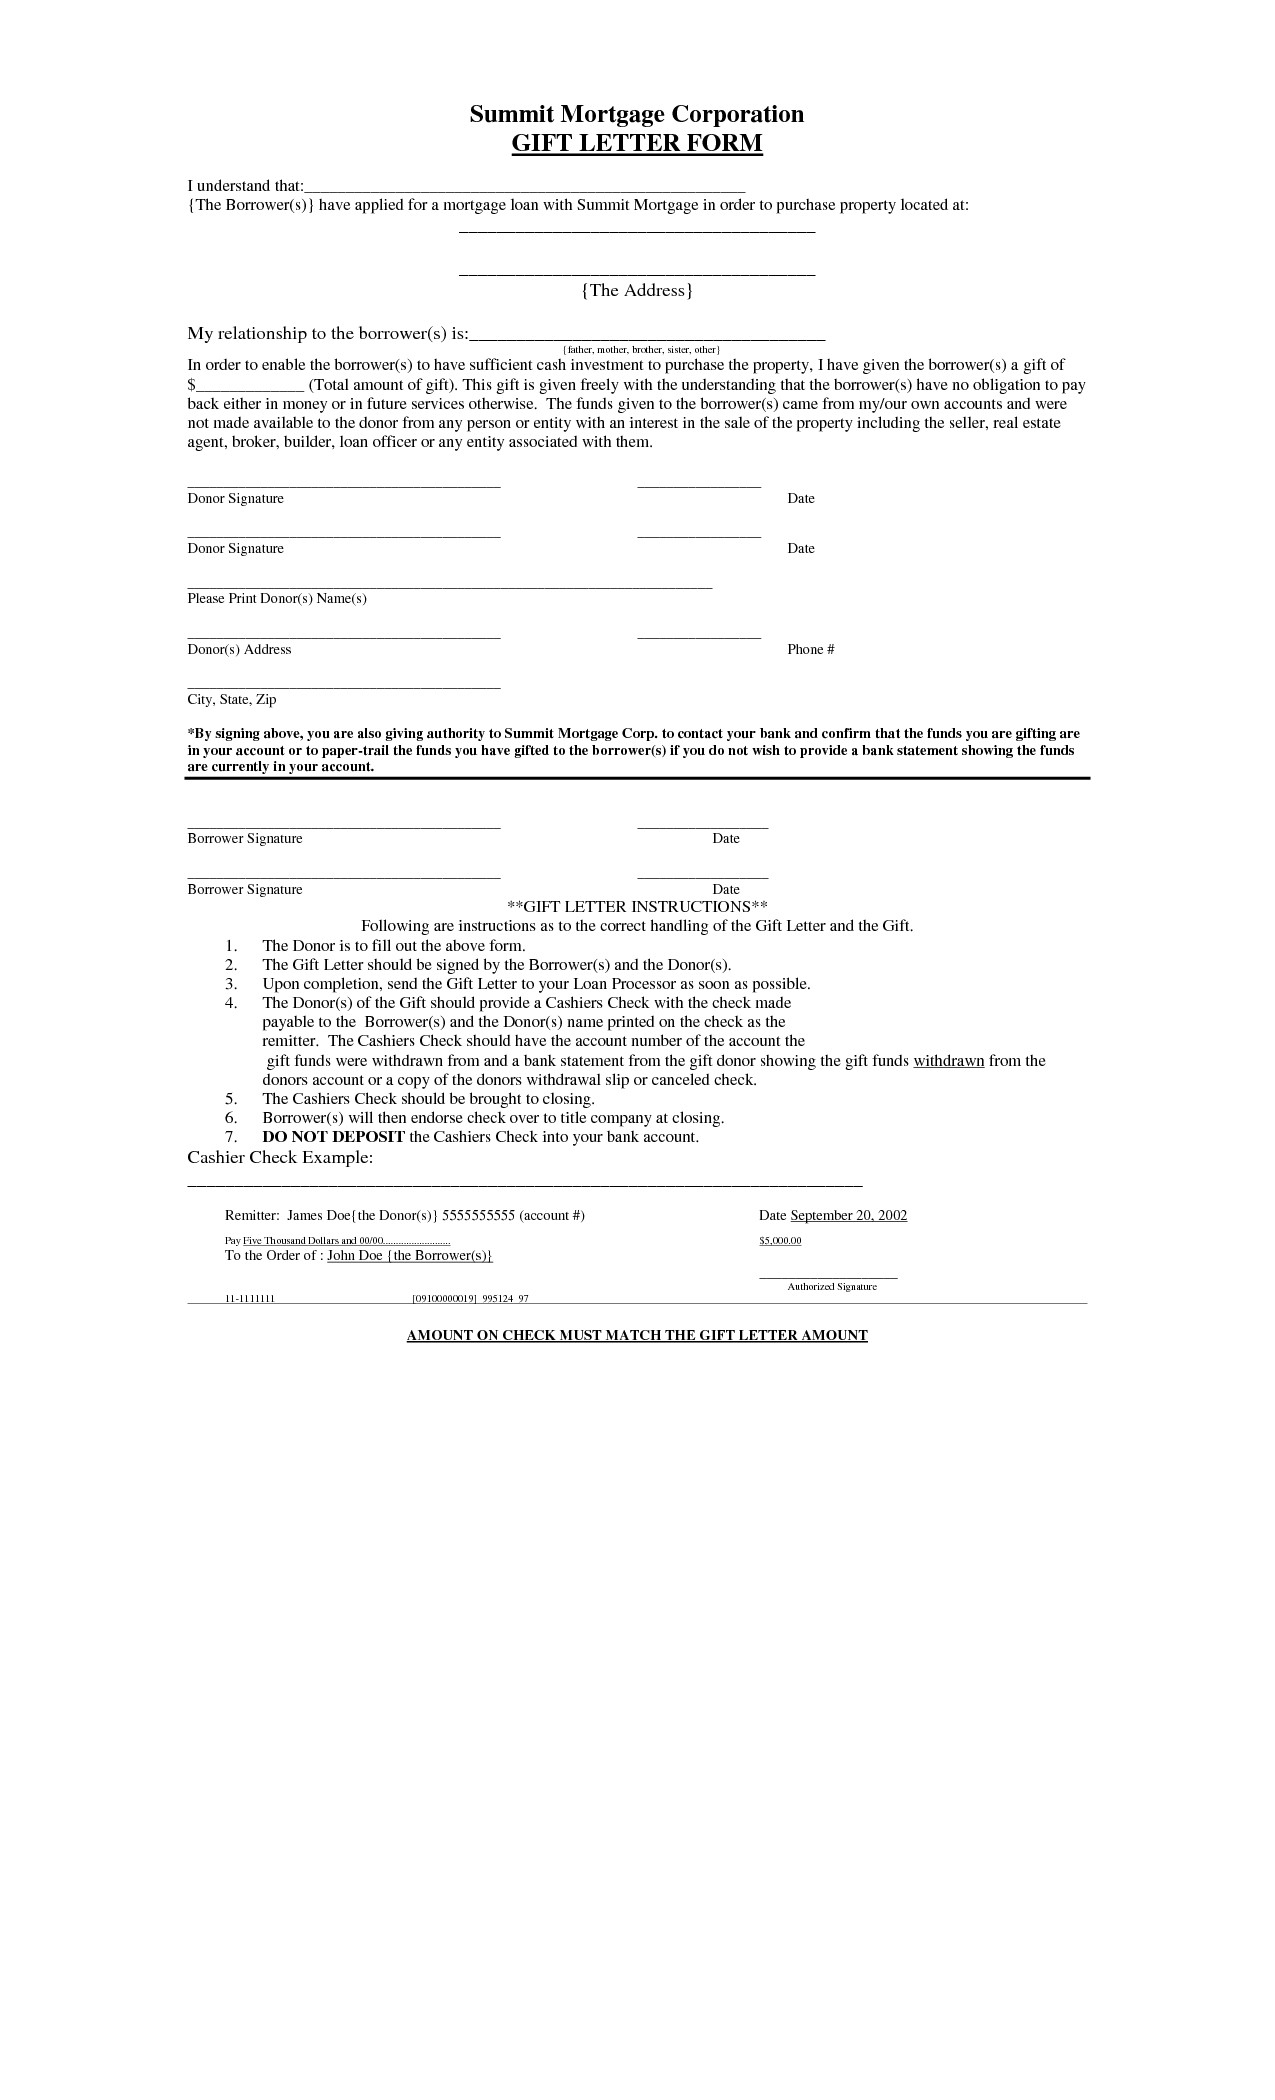 Mortgage Gift Letter Template - Mortgage Loan Gift Letter Template Archaicawful Loan T Letter